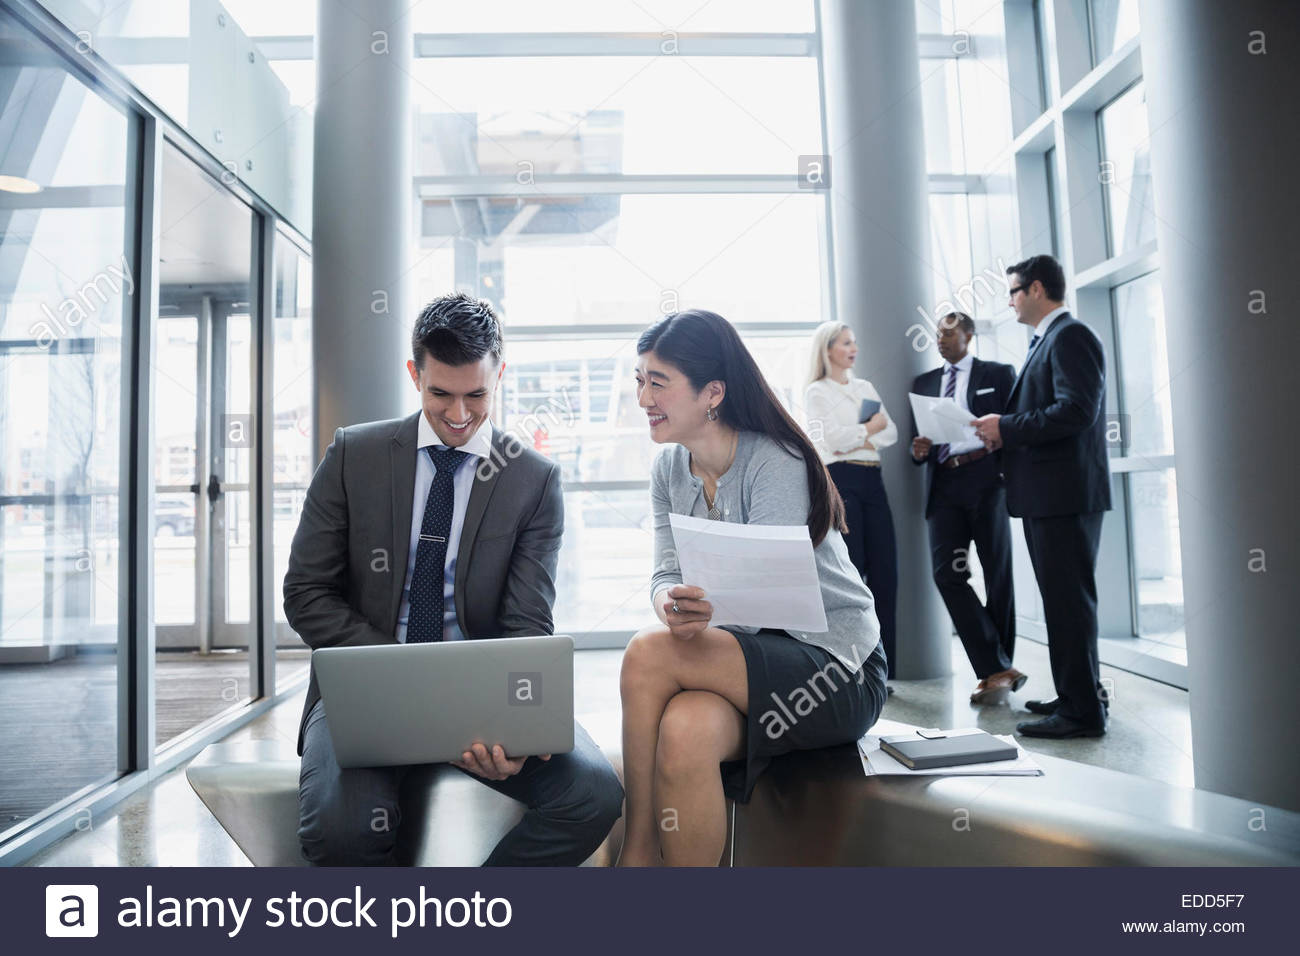 Businessman and businesswoman using laptop Photo Stock